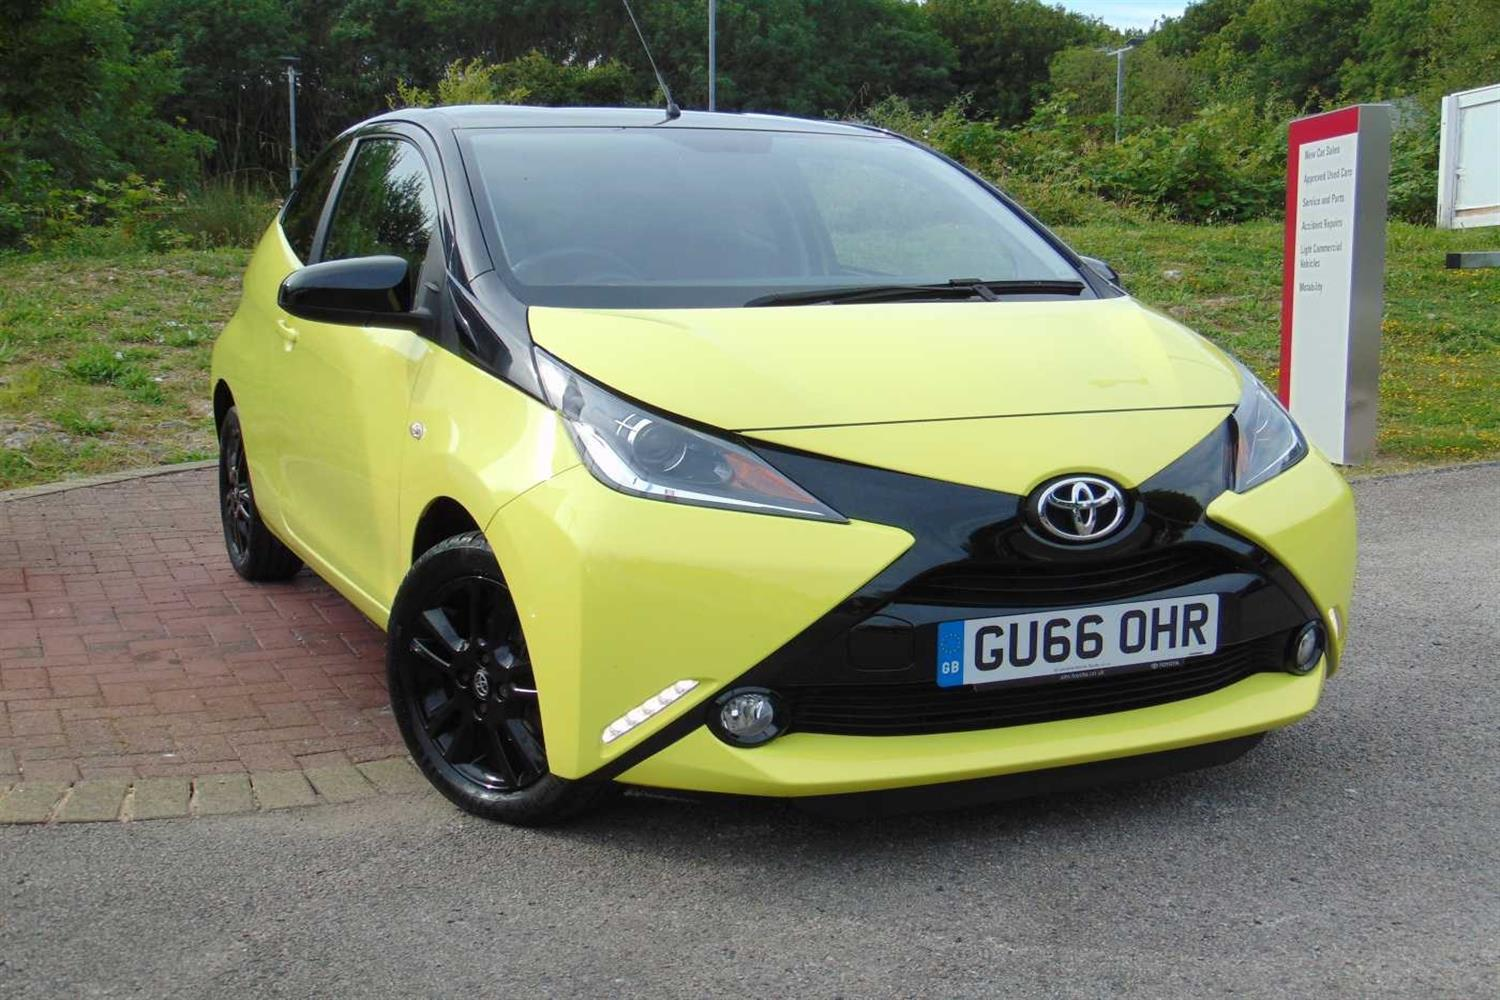 Toyota Aygo 1.0 VVT-i x-cite 3 (Bi-tone Yellow) Hatchback Petrol Yellow